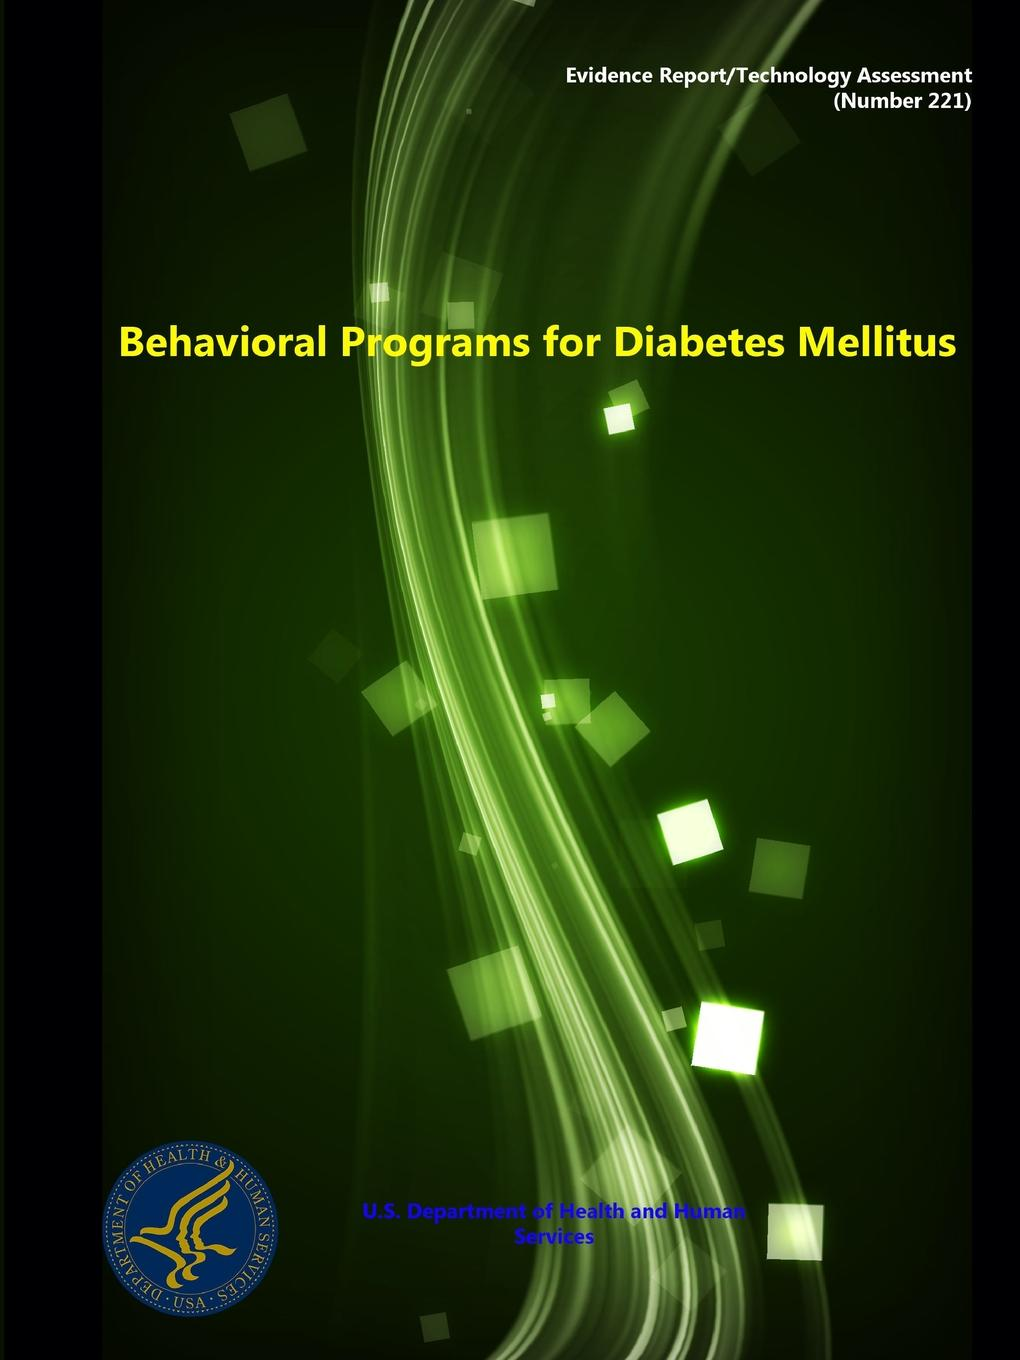 Department of Health and Human Services Behavioral Programs for Diabetes Mellitus - Evidence Report/Technology Assessment (Number 221)